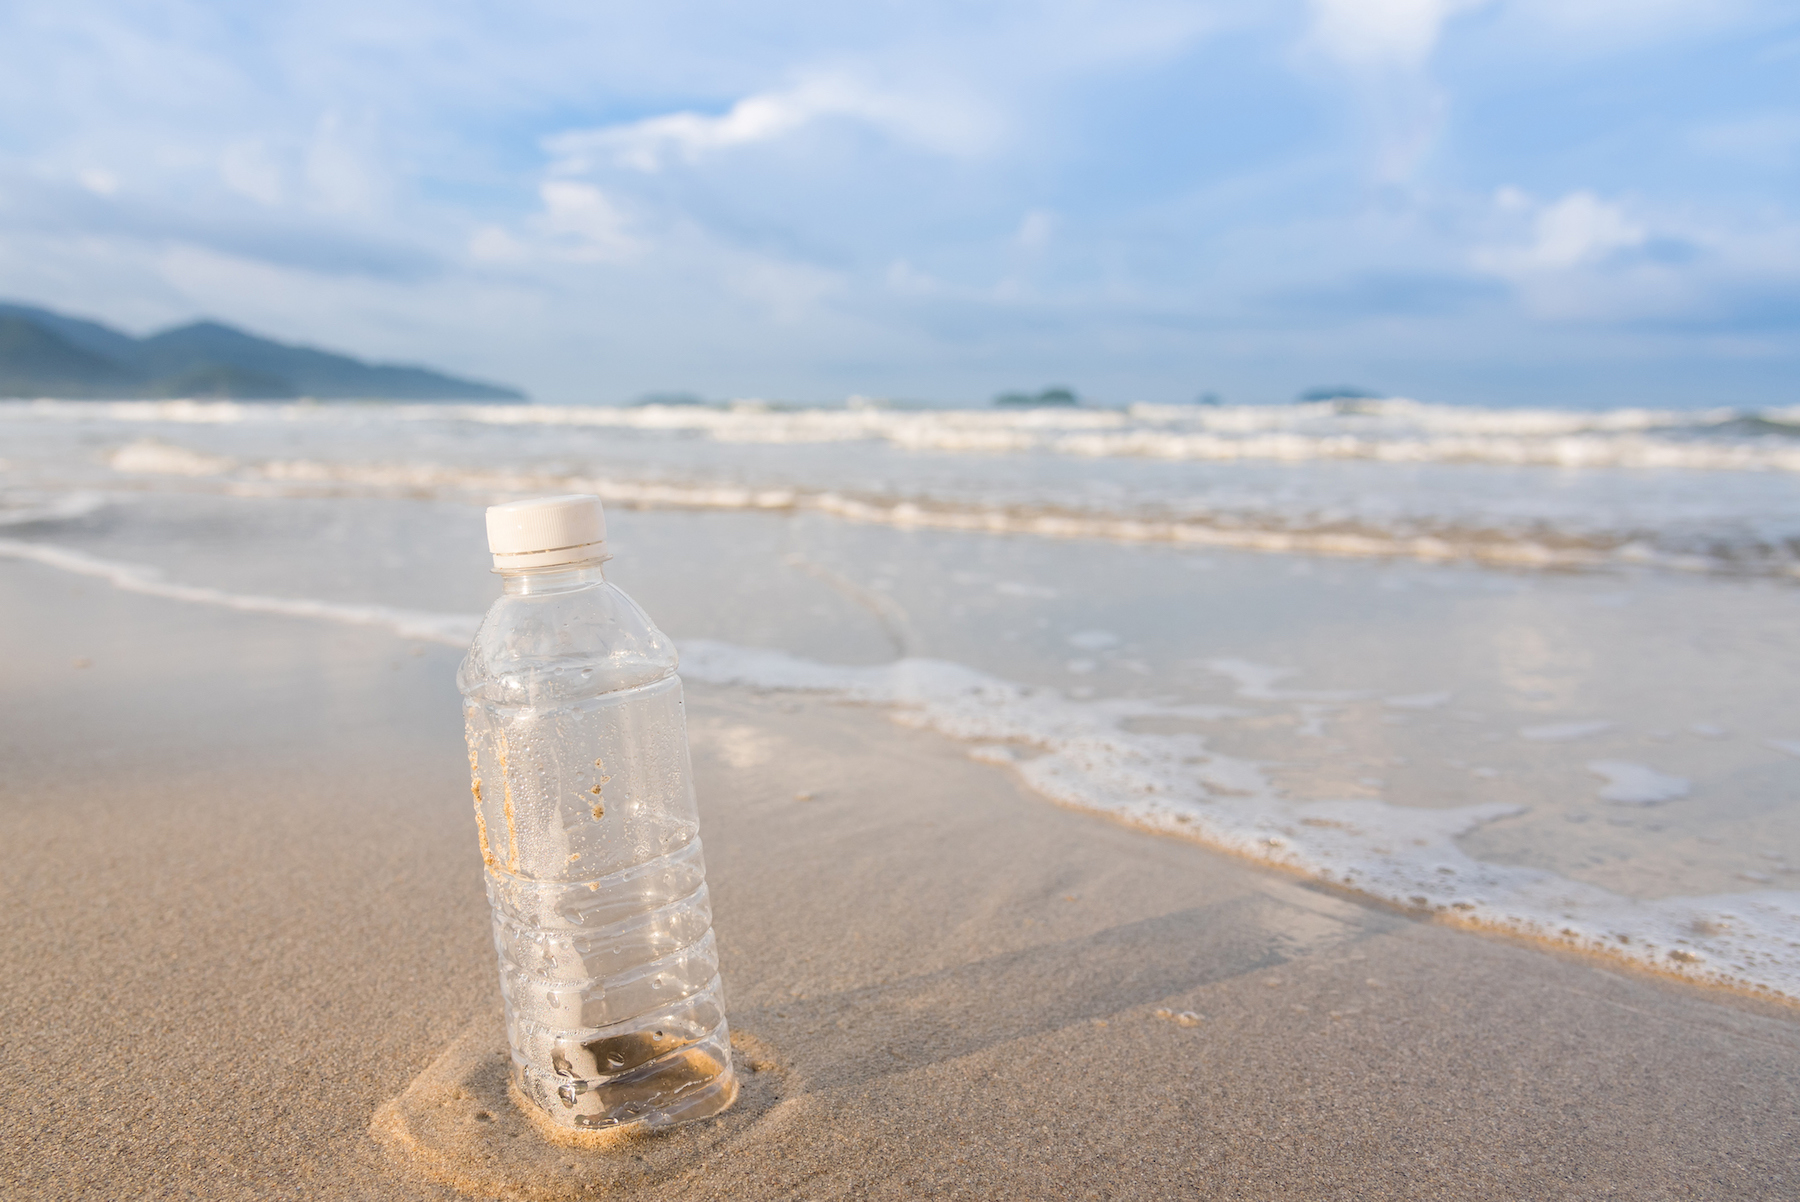 plastic water bottle on beach